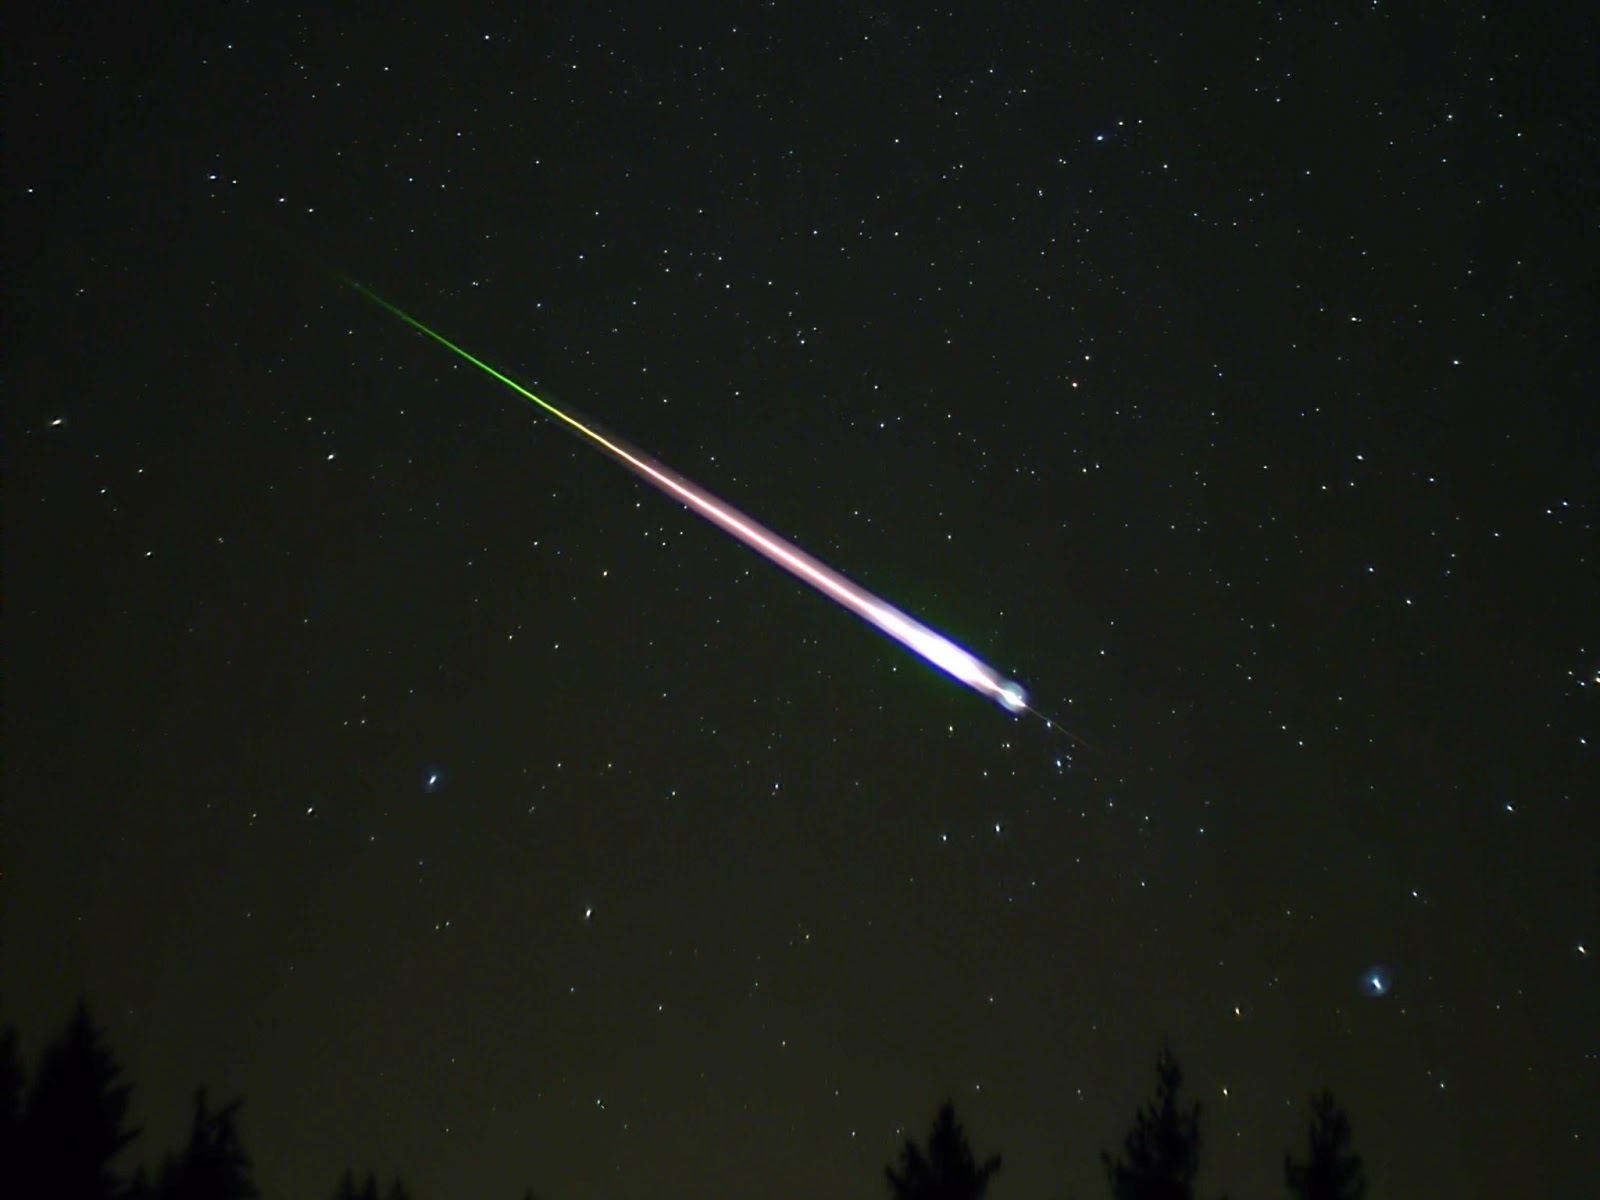 4x4 Hd Wallpapers >> Meteor Shower, Free Stock Photos - Free Stock Photos